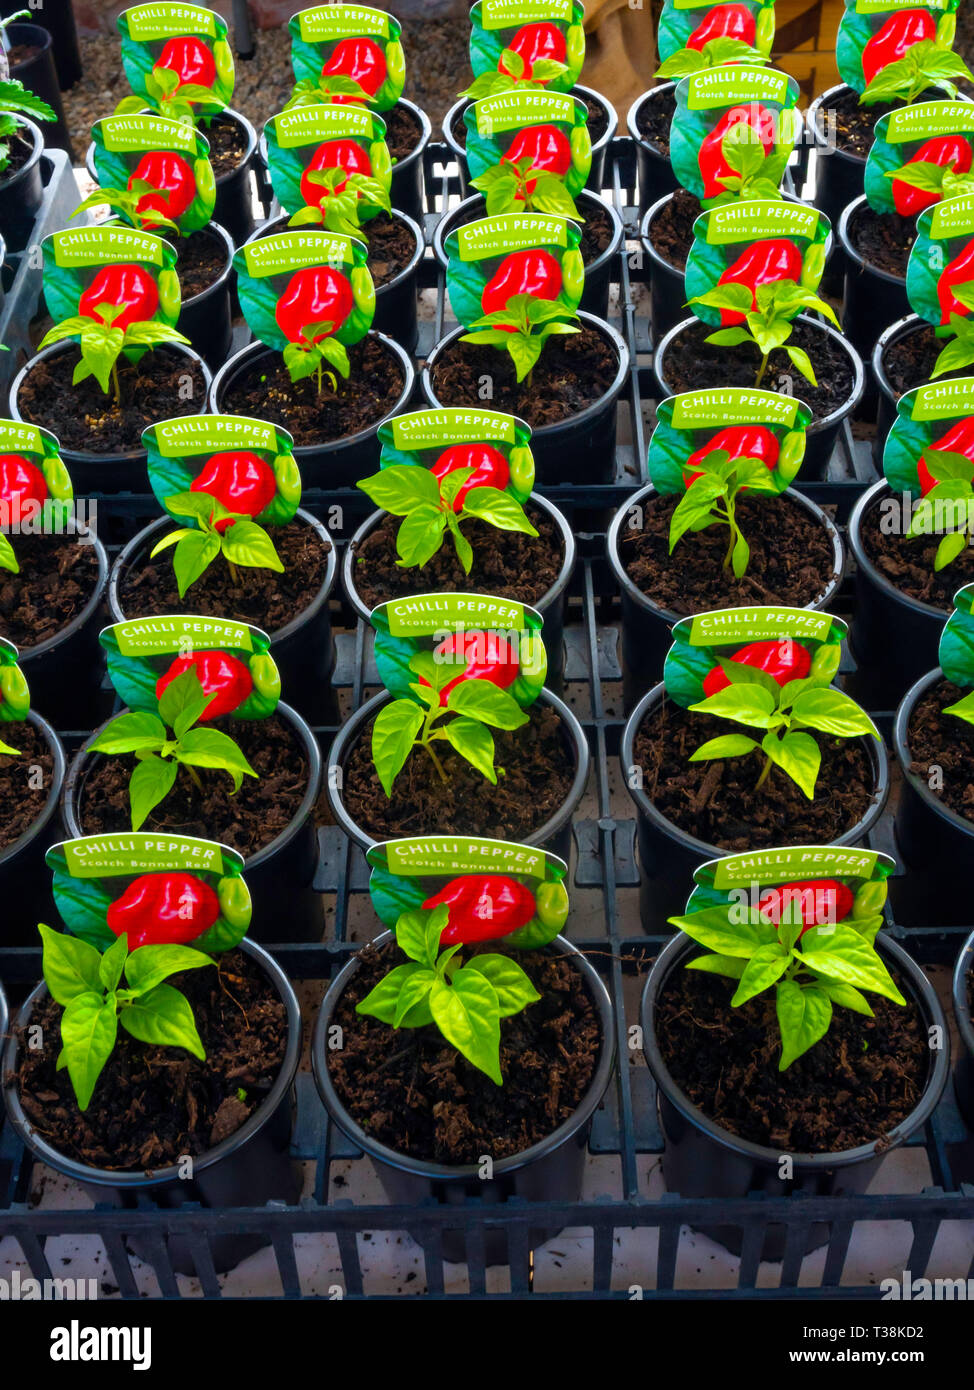 Plant nursery display of young  plants in a greenhouse in early spring,  Chilli   Pepper Scotch Bonnet Red for later sale as bedding plants Stock Photo